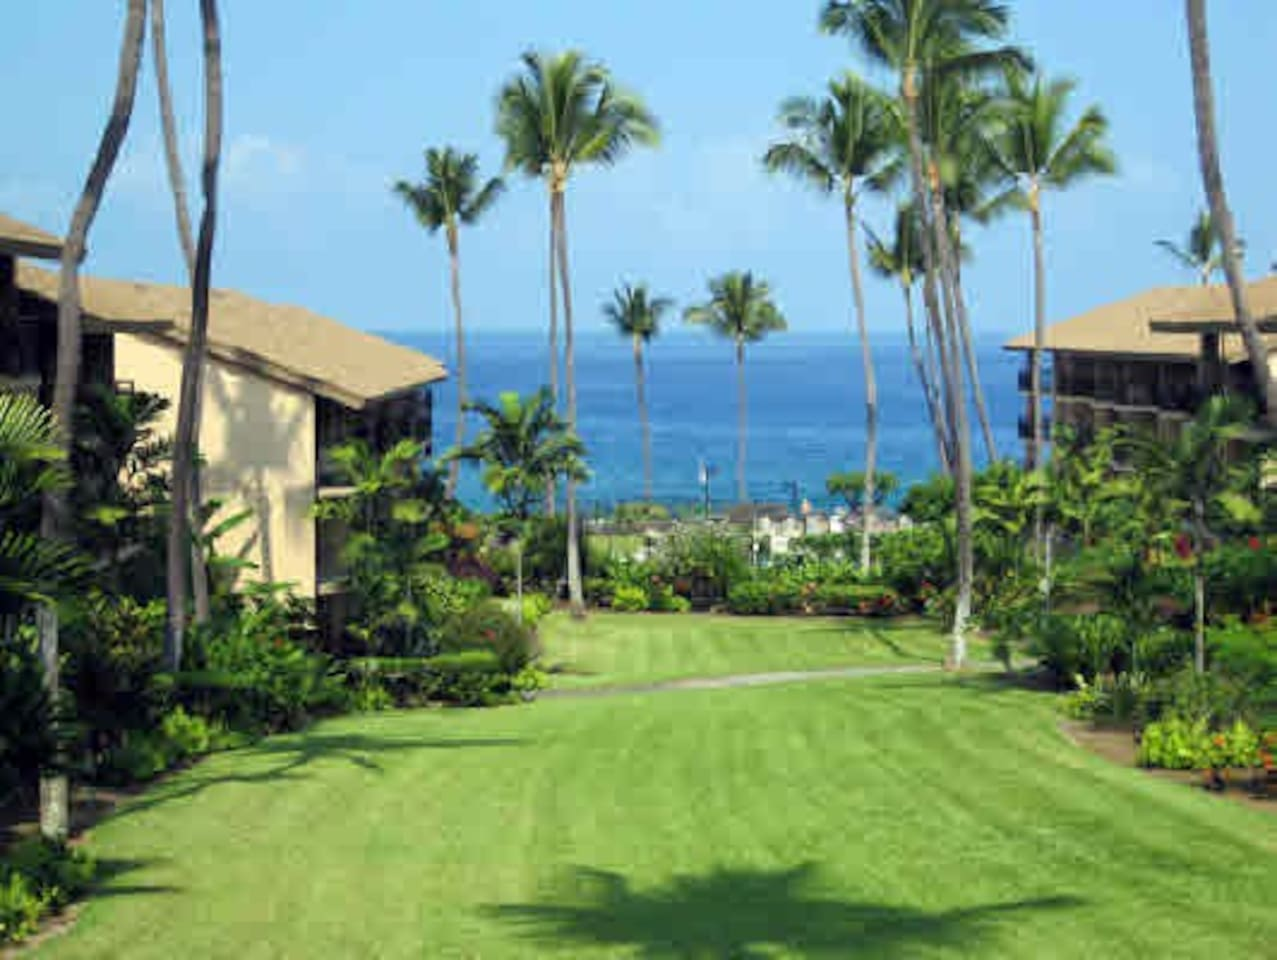 View from the Lanai down the beautiful green lawn to the Ocean